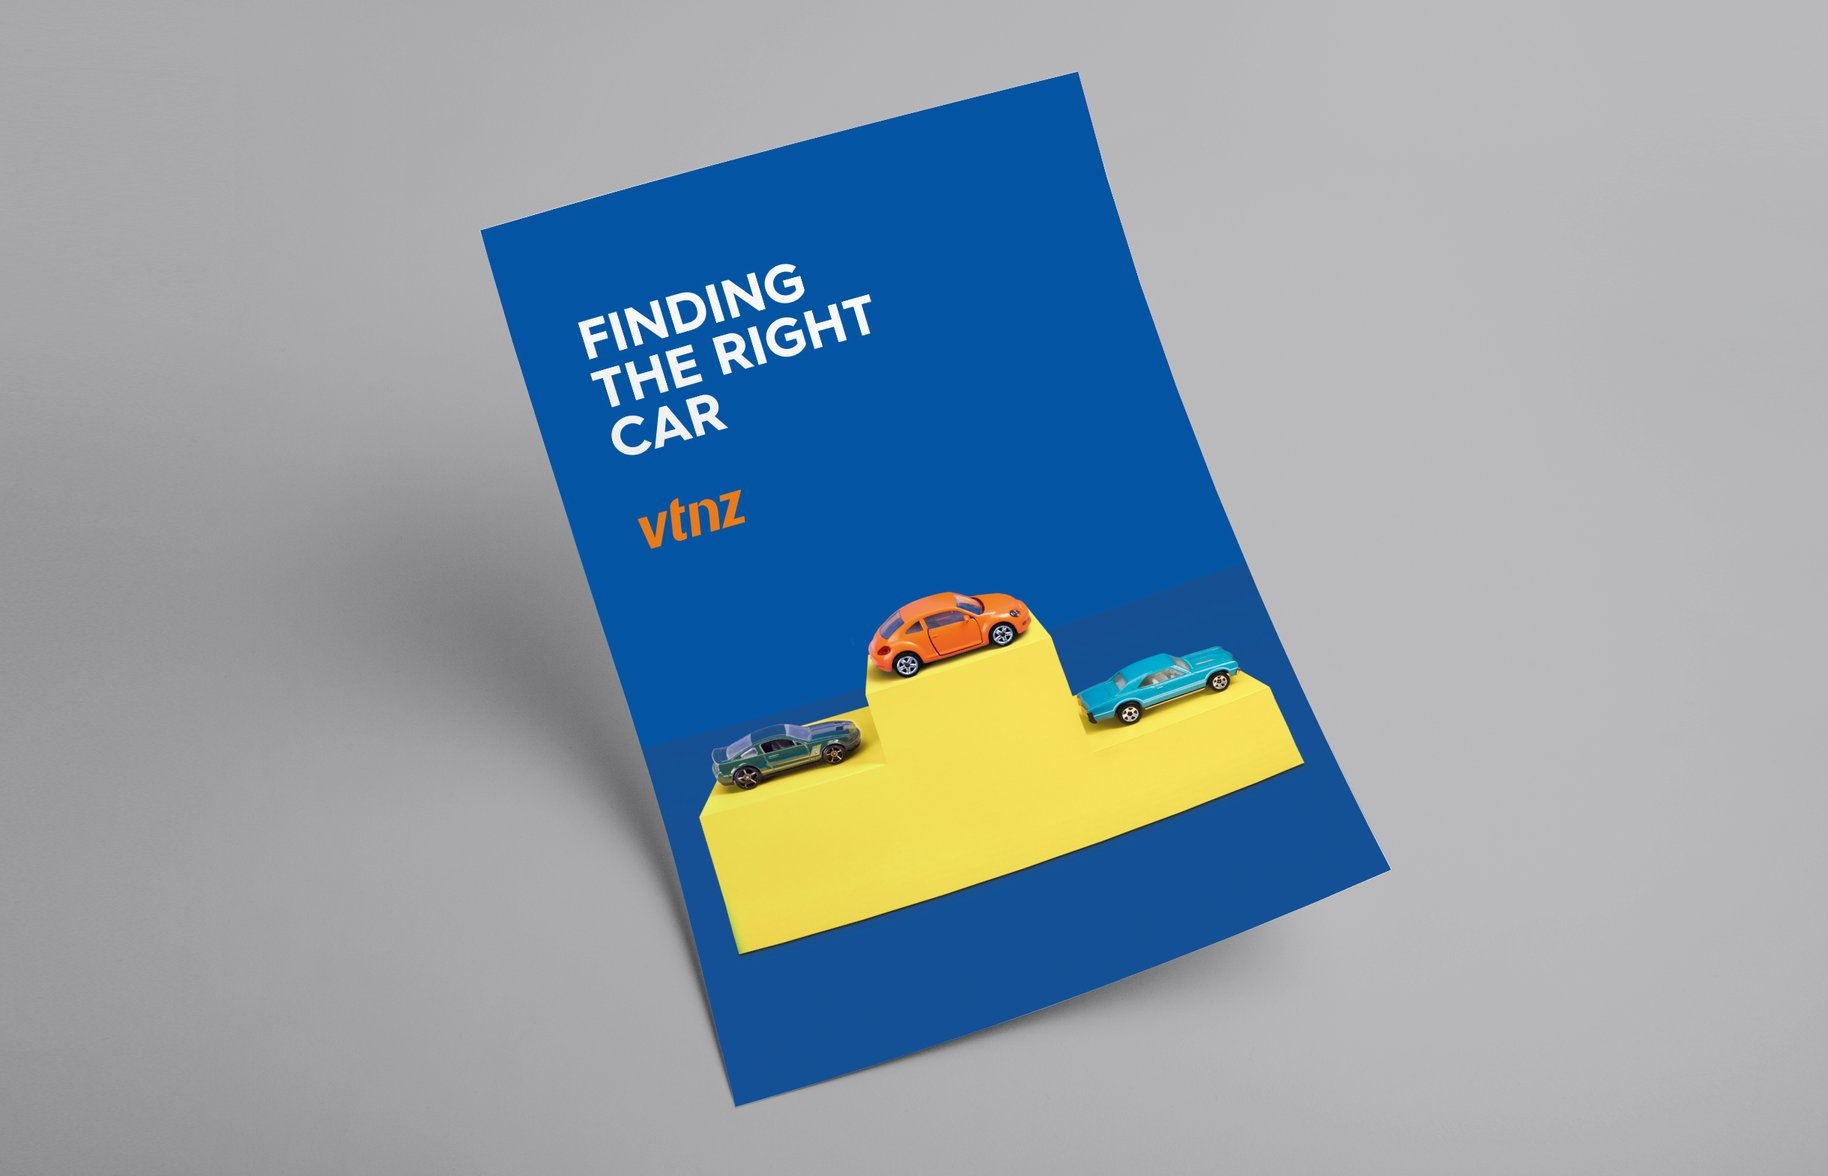 VTNZ 'Finding the right car' Poster